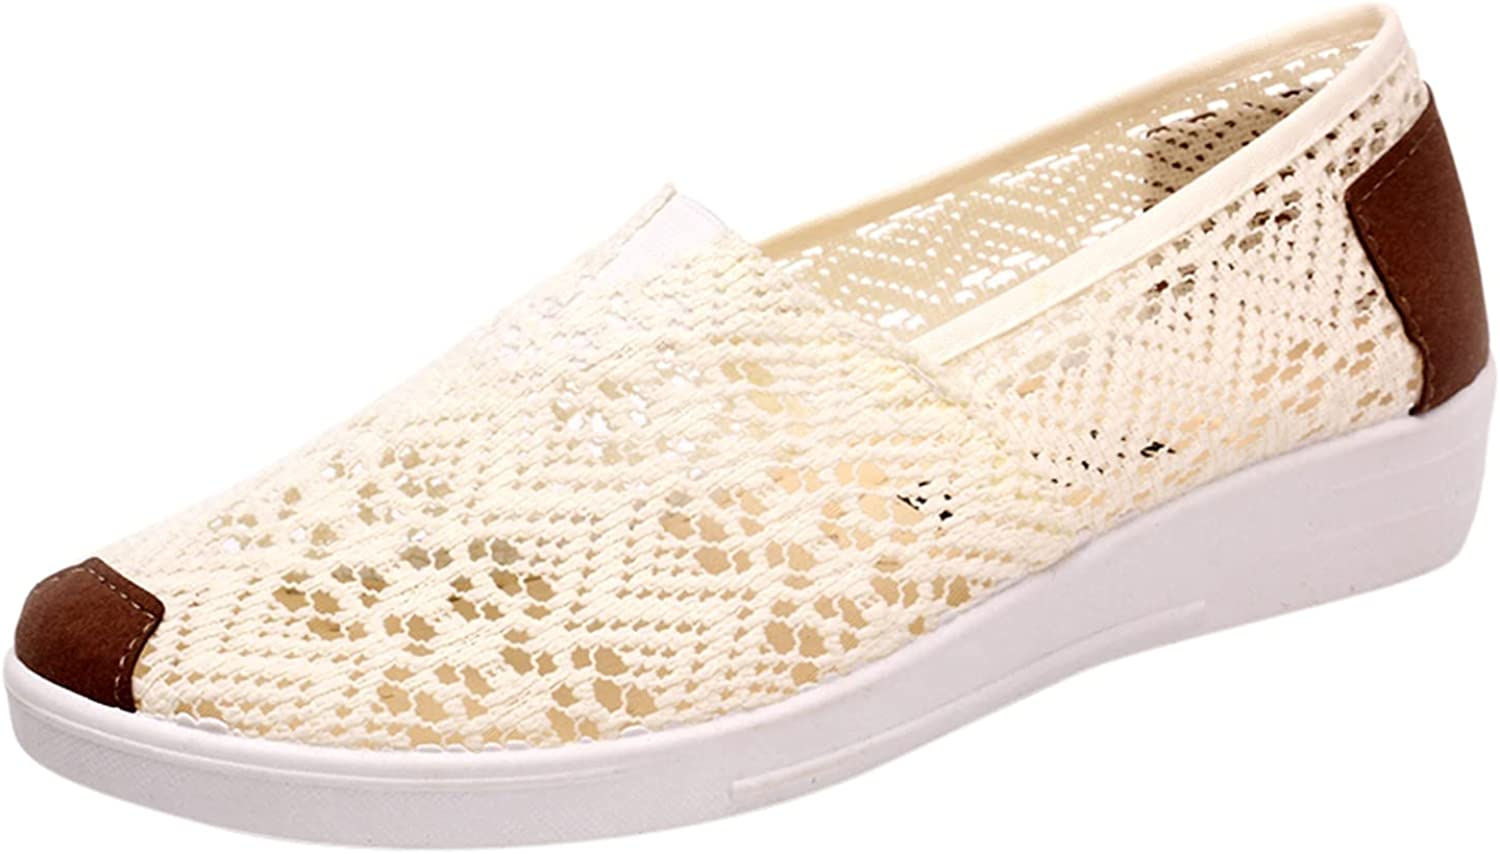 BGFIIPAJG Women's Fashion Sneakers Oakland Mall Espadrille Shoes Outlet ☆ Free Shipping Mesh Casual